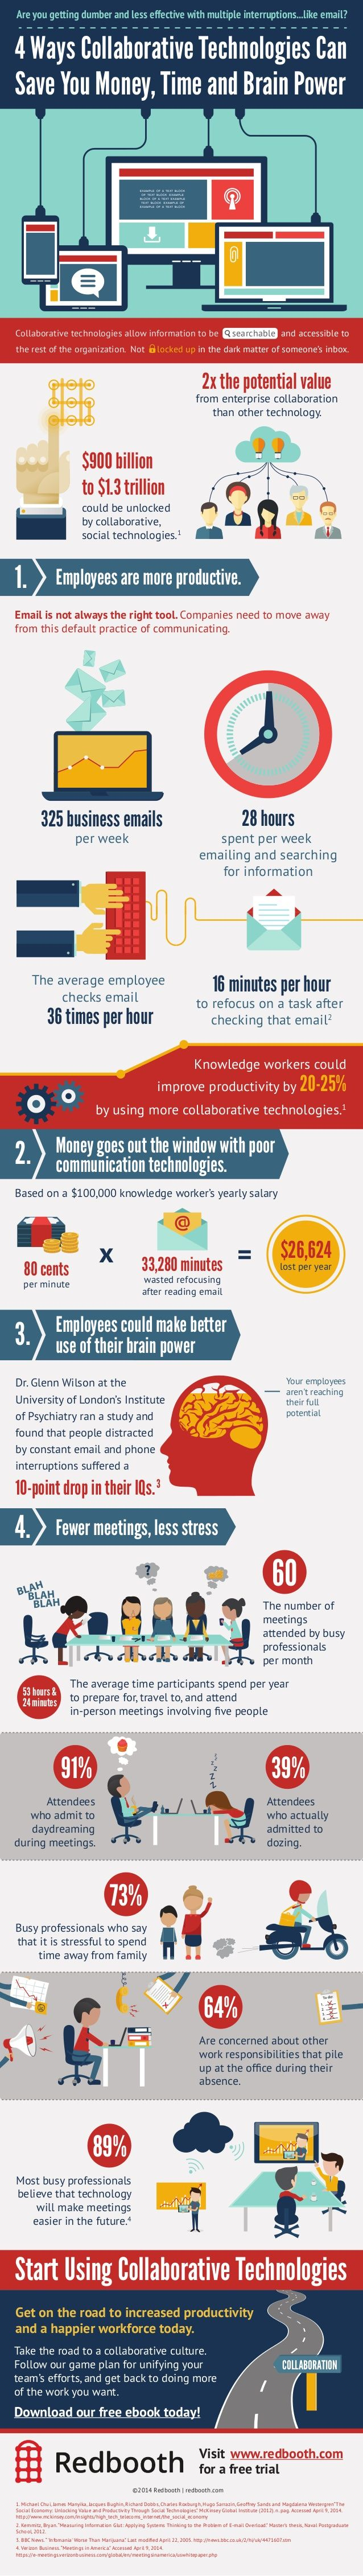 4 Ways Collaborative Technologies Can Save You Money, Time and Brainpower  by Redbooth via slideshare